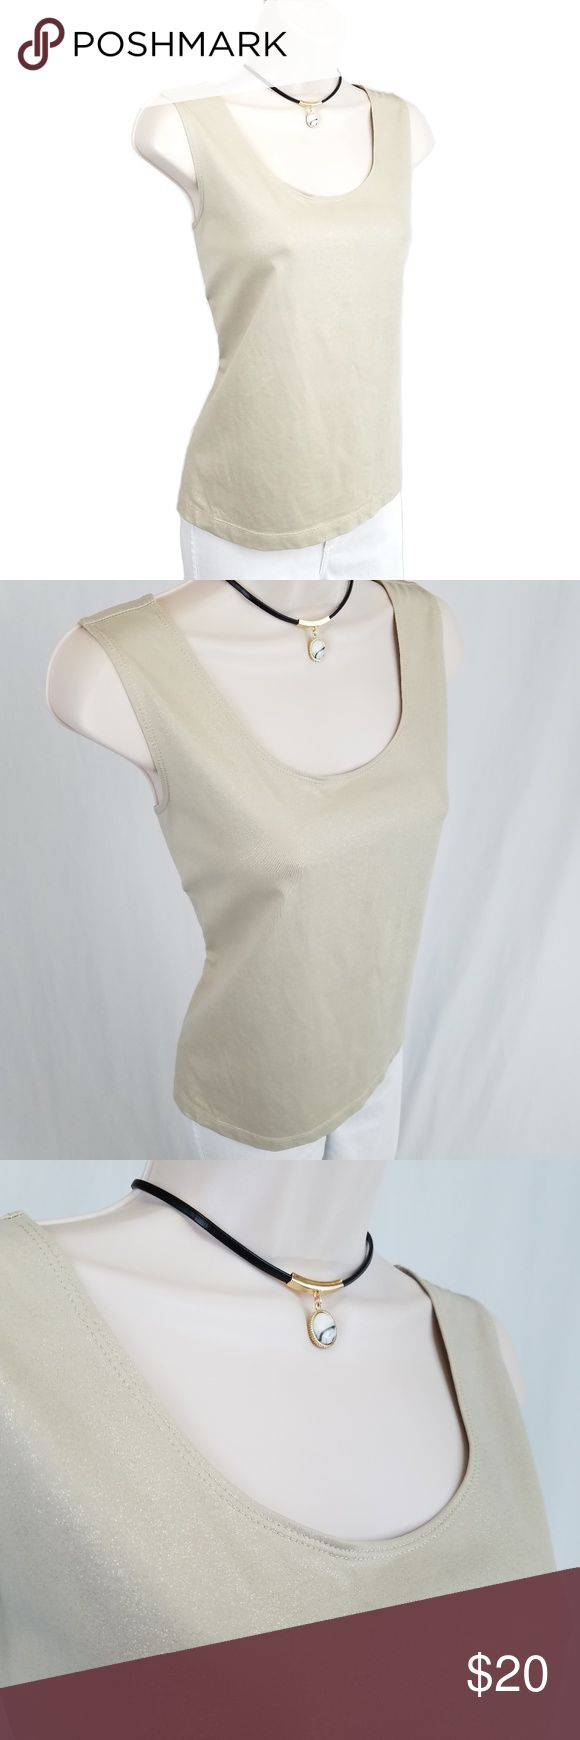 Chico's gold sleeveless top / shell Sleeveless crew neck stretch jersey shell in subtle shimmering gold laid over a taupe-ish base color.  Chico's size 2, equivalent to large.    Bust 19.5 / lengther 22.5 inches (unstretched).  92% nylon, 8% spandex. Chico's Tops